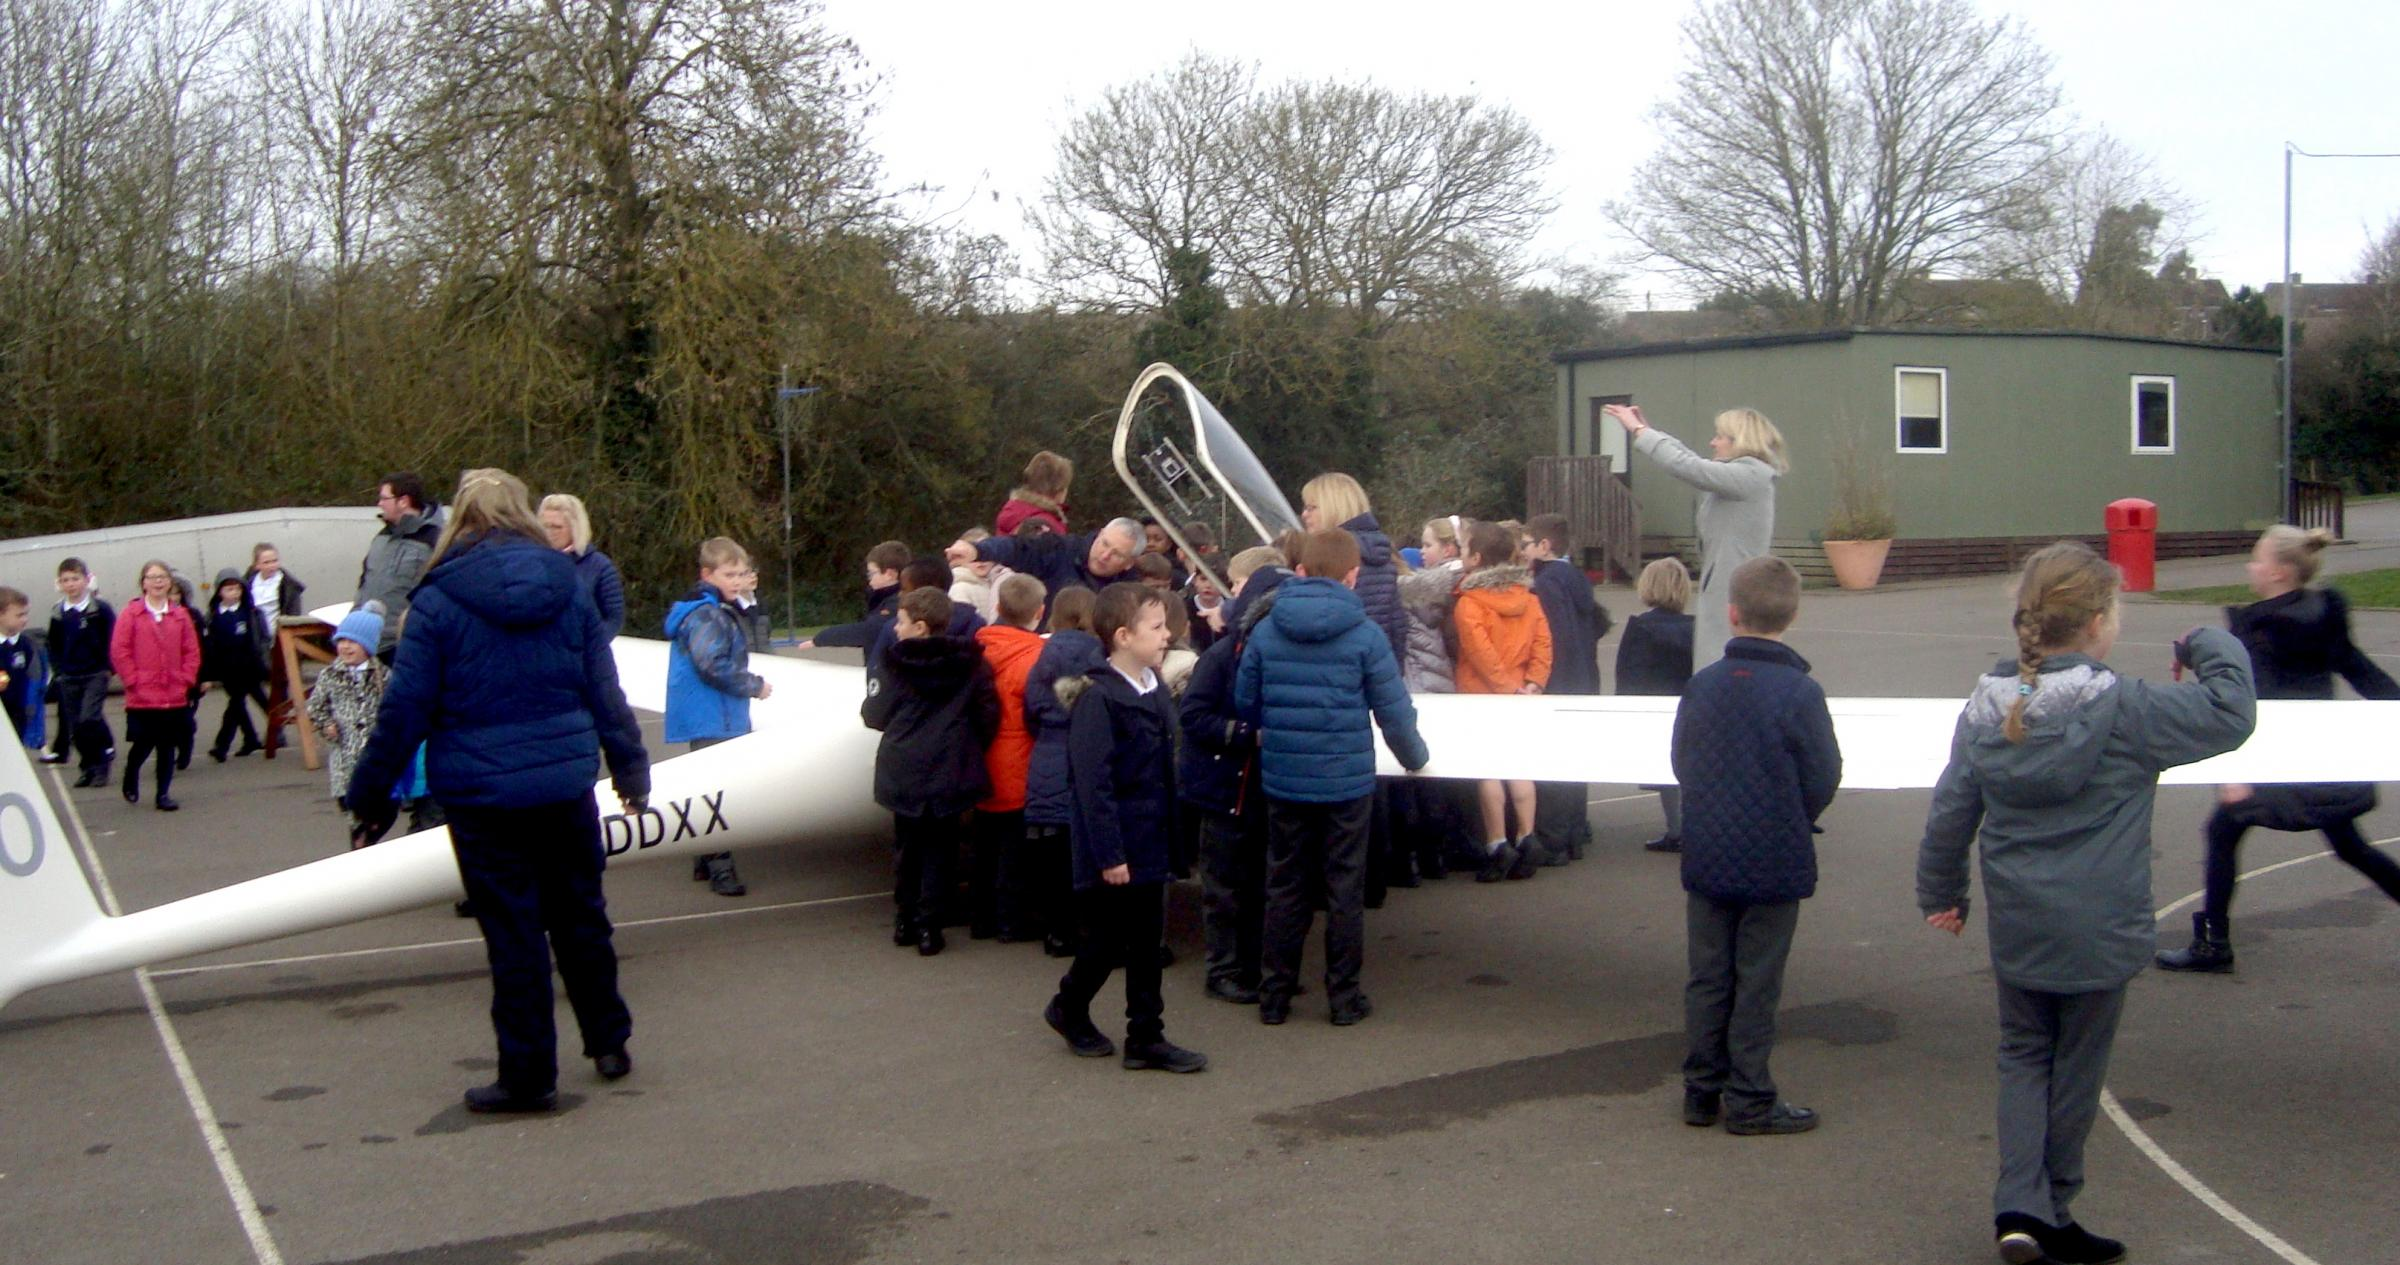 Glider at Noremarsh School, Royal Wootton Bassett.